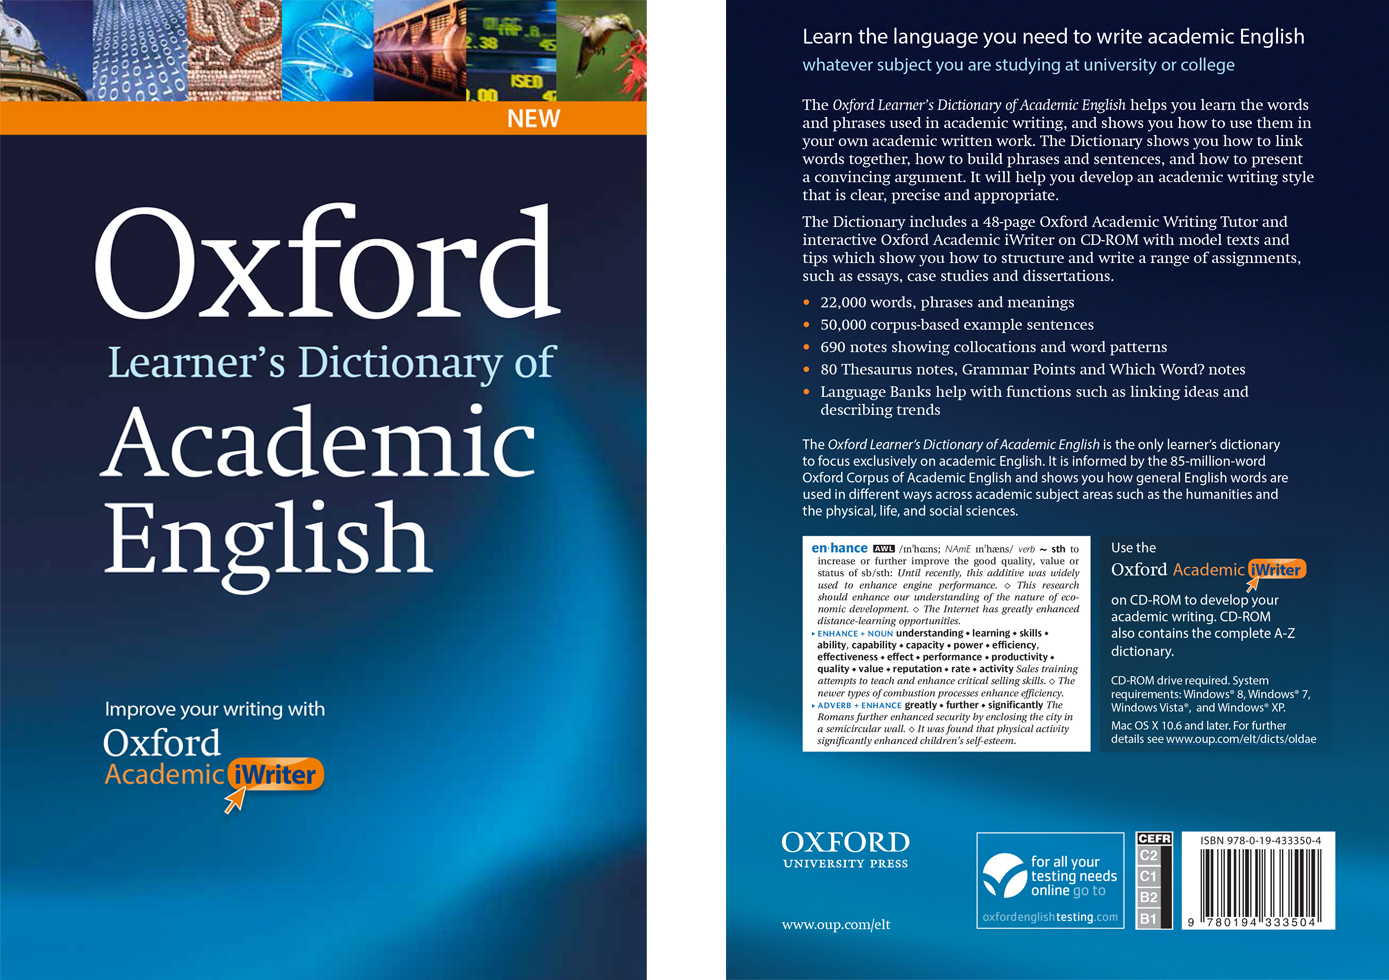 eap_dictionary_cover